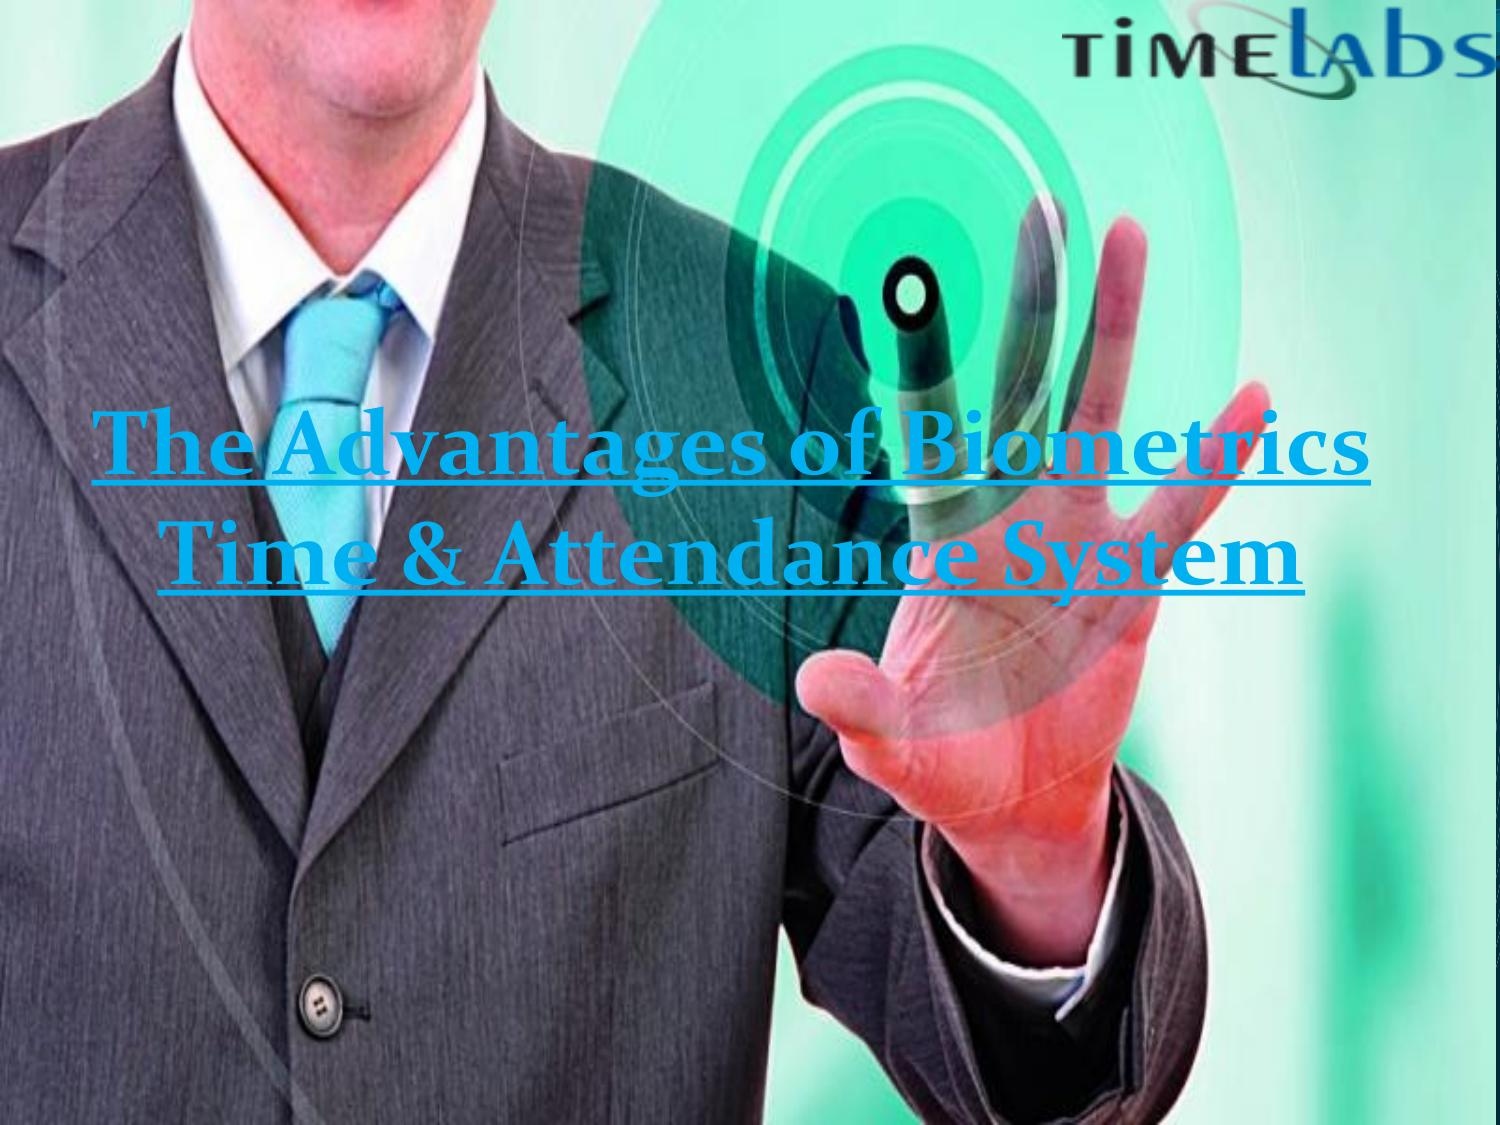 The advantages of biometrics time & attendance system by